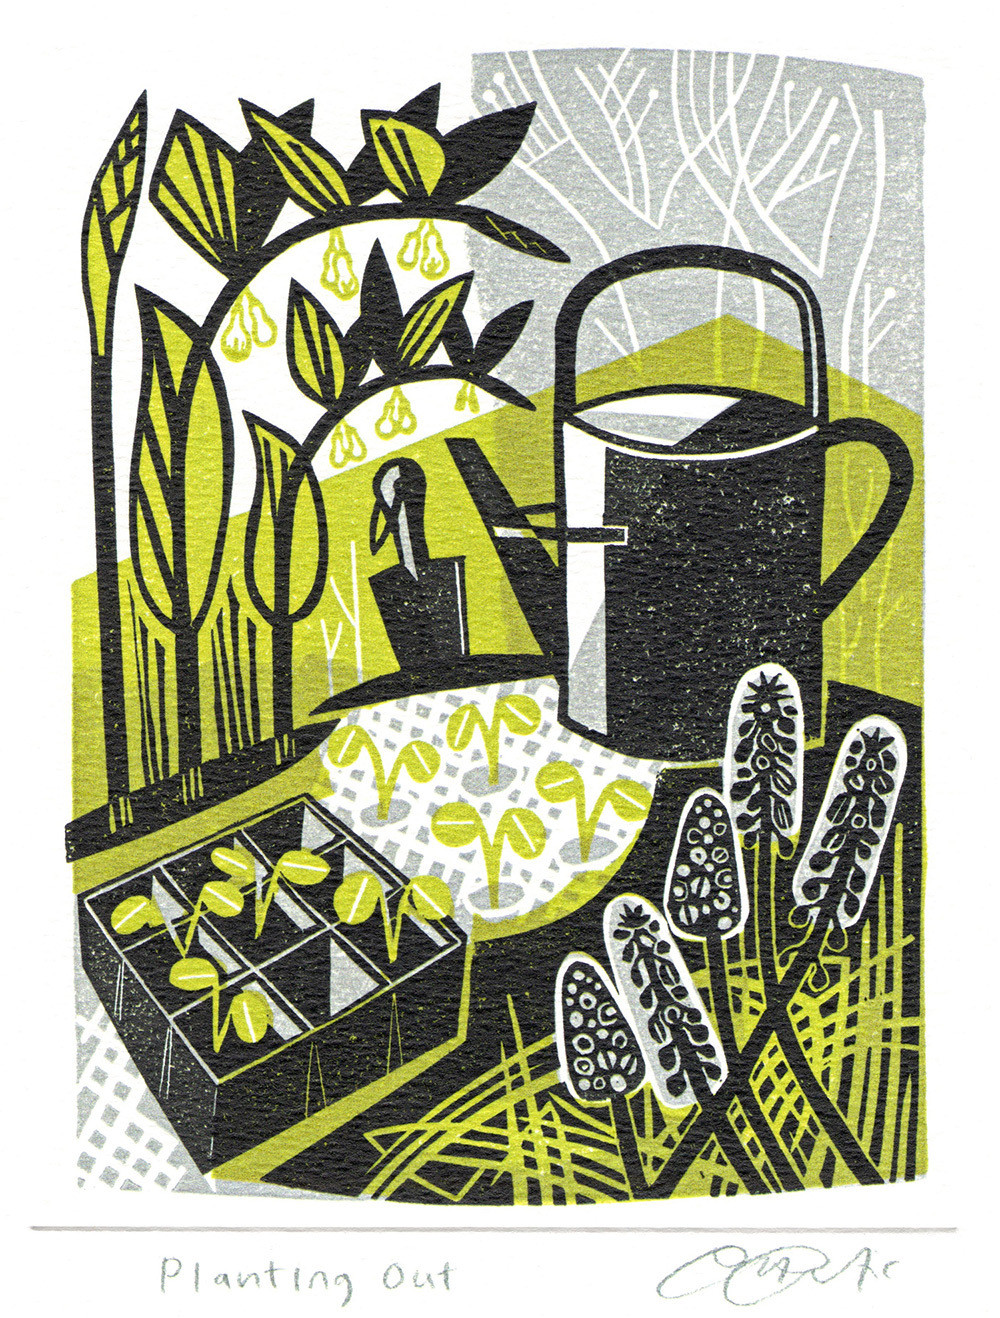 Planting Out- Printmakers Card